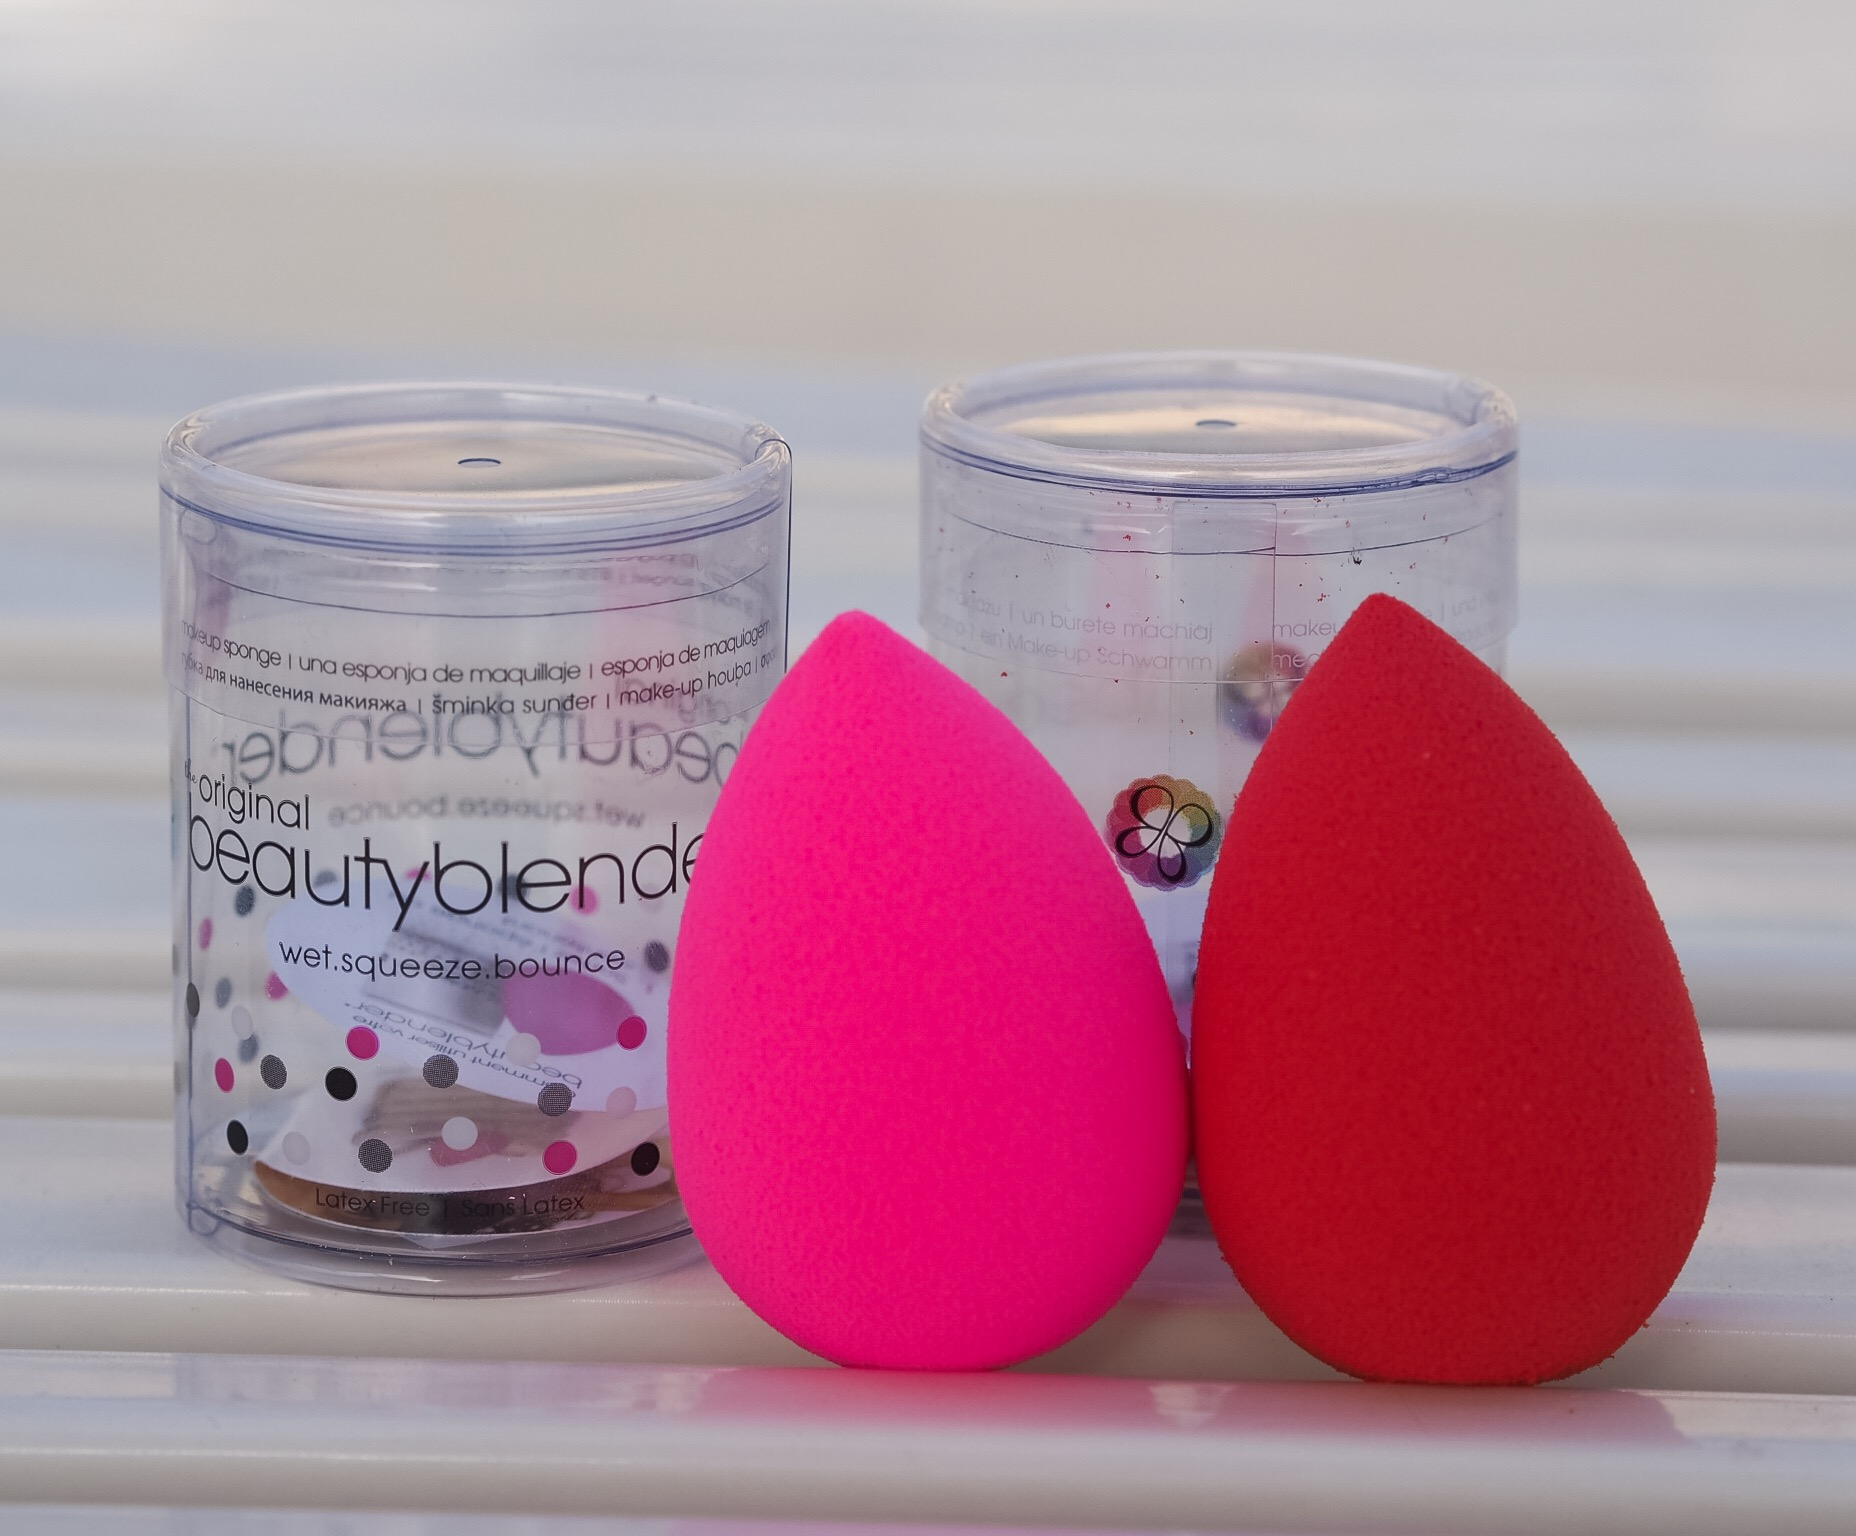 The Beauty Blender